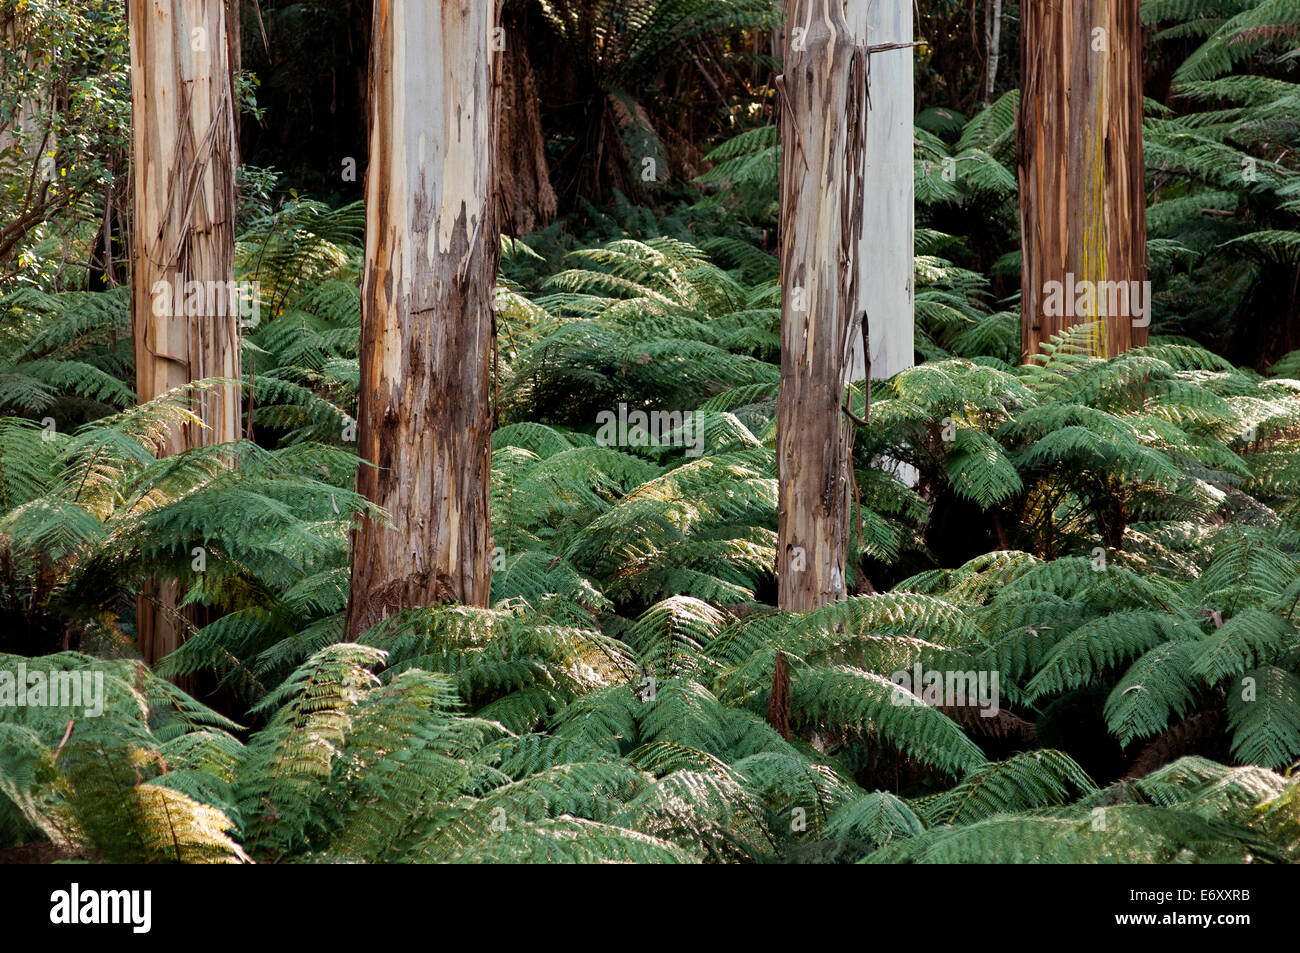 Large eucalypts in the Martins Creek Reserve, East Gippsland, Victoria, Australia - Stock Image